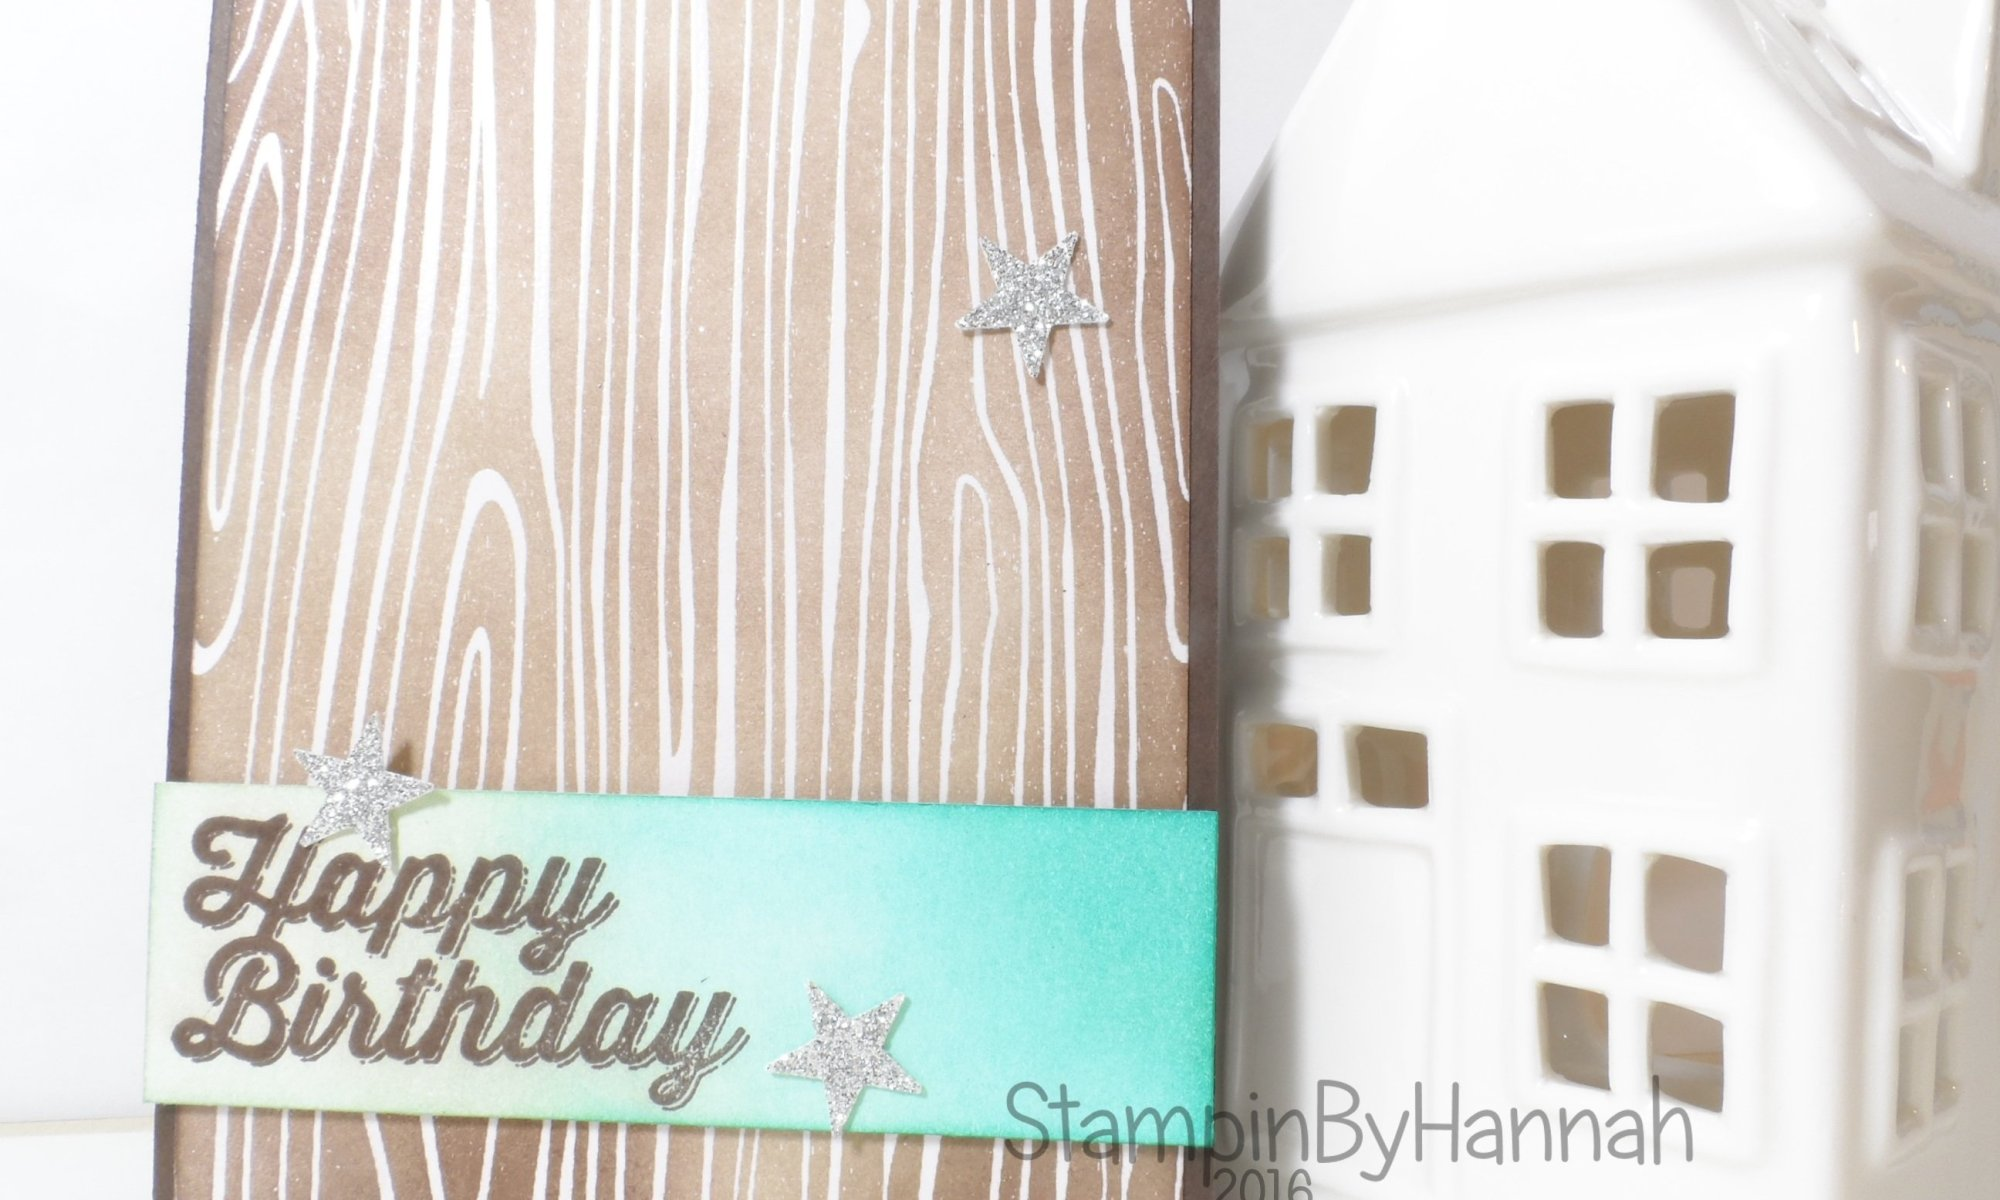 Stampin' Up! UK Colour me irresistible boys birthday card